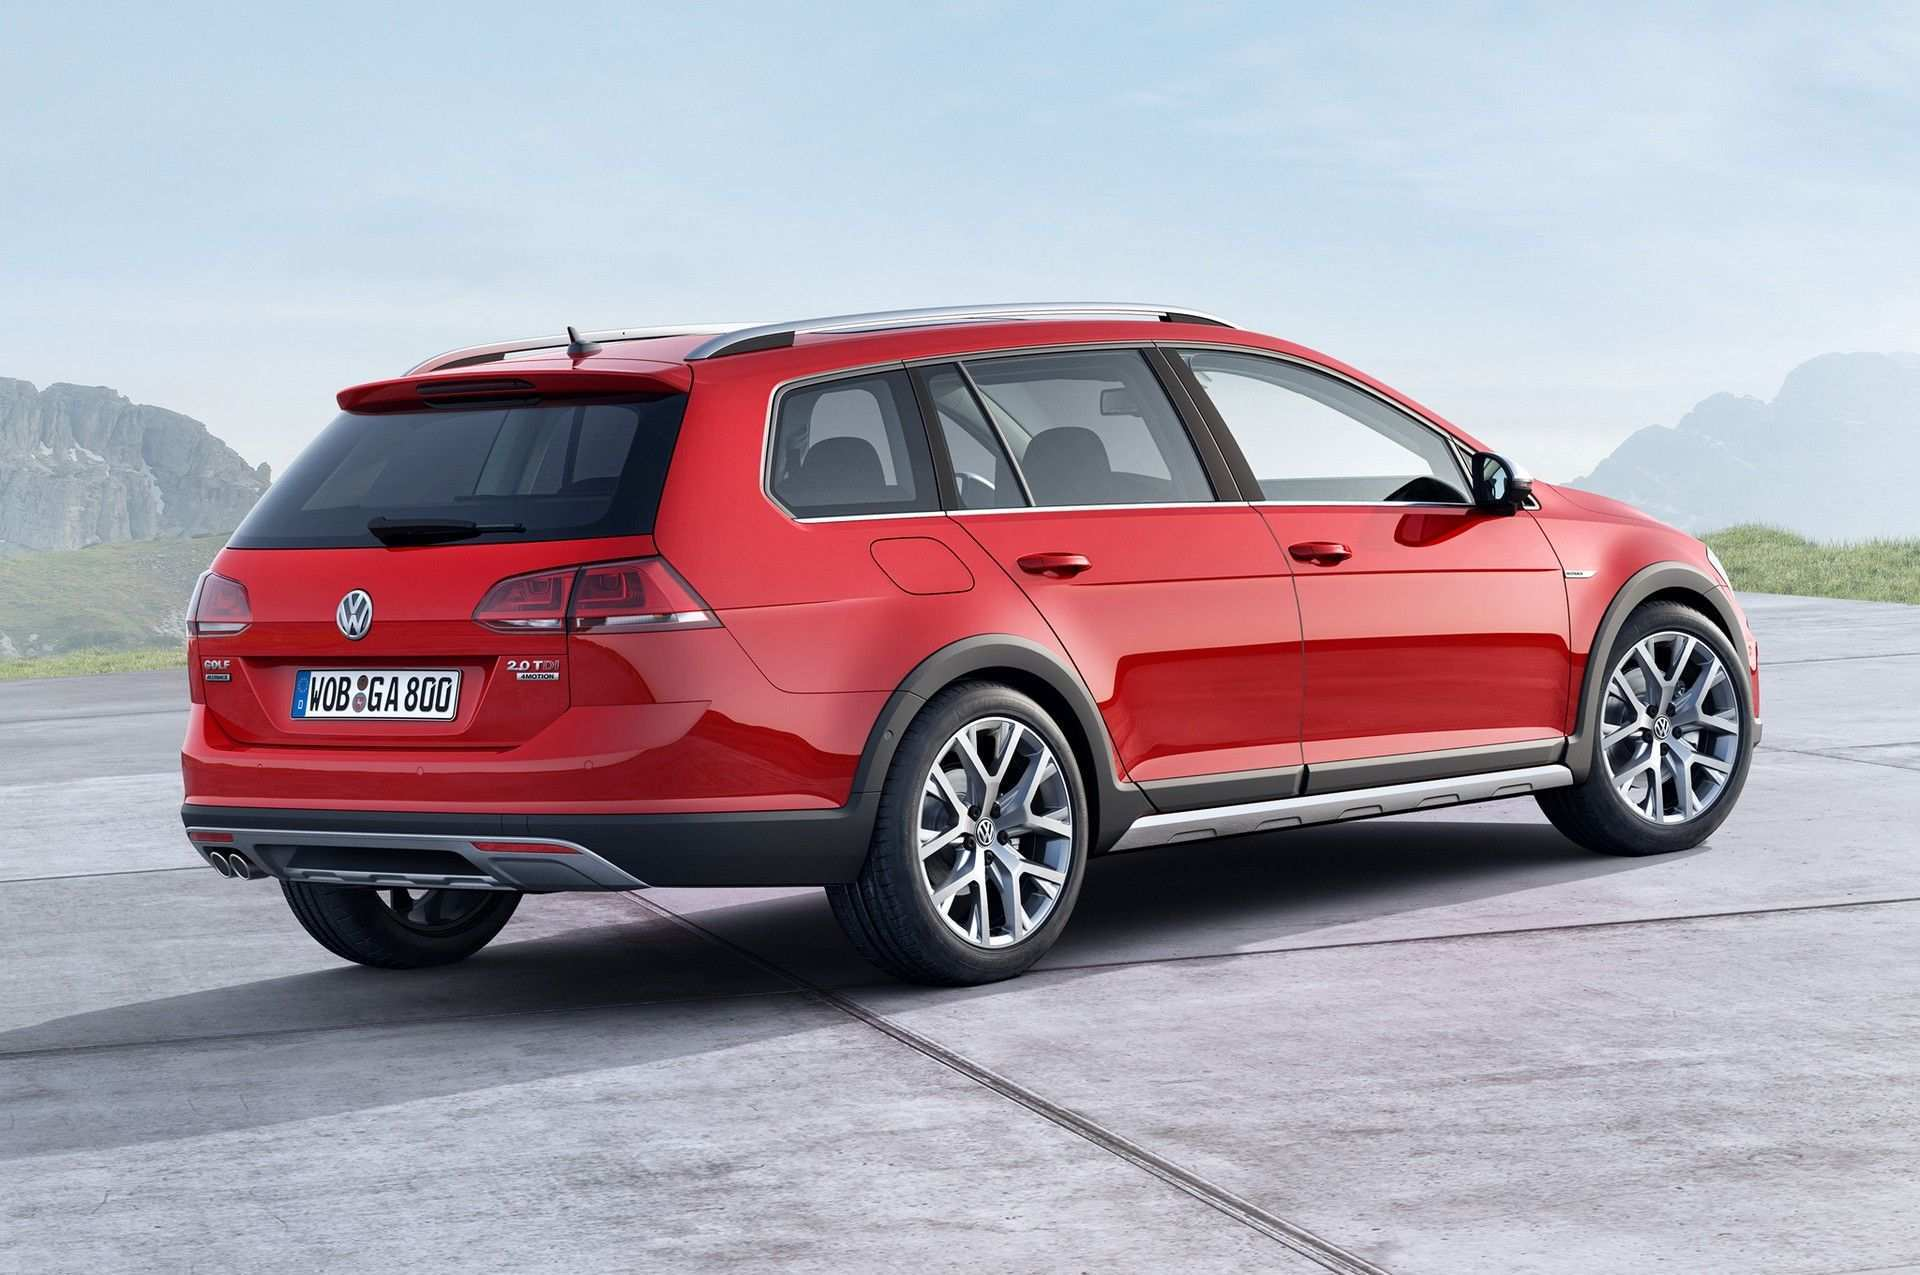 50 Concept of 2020 Vw Models Specs and Review by 2020 Vw Models